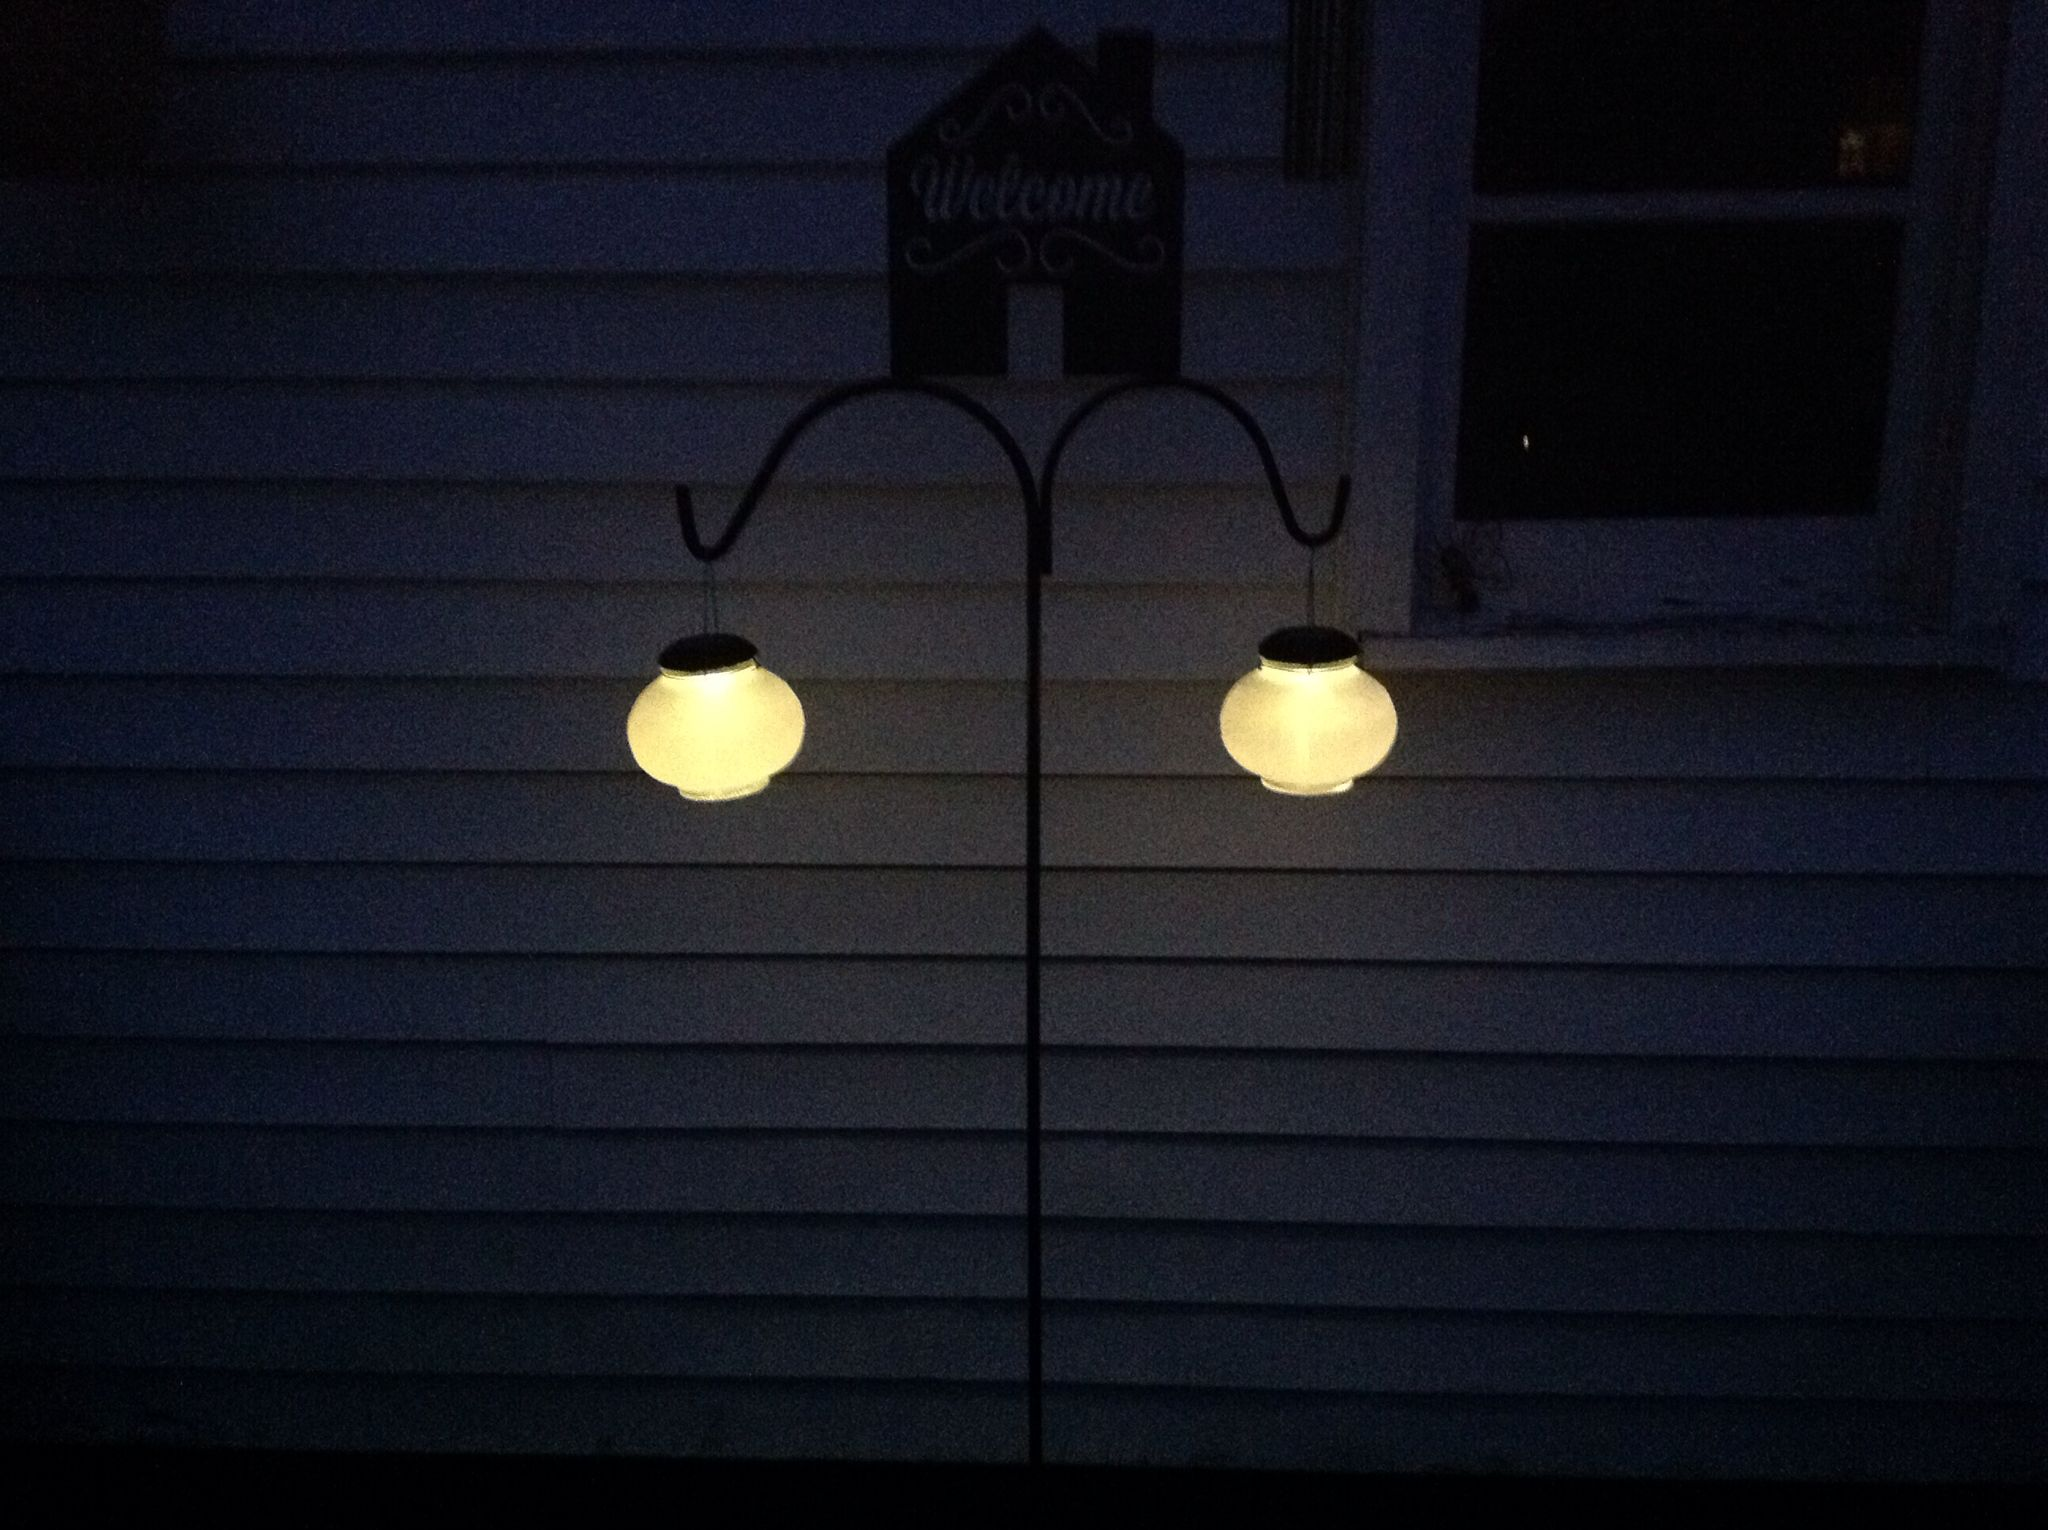 Outdoor Solar Lights Lowes Brilliant $2 Glass Light Globes From Habitat Restore  $298 Solar Lights From Inspiration Design